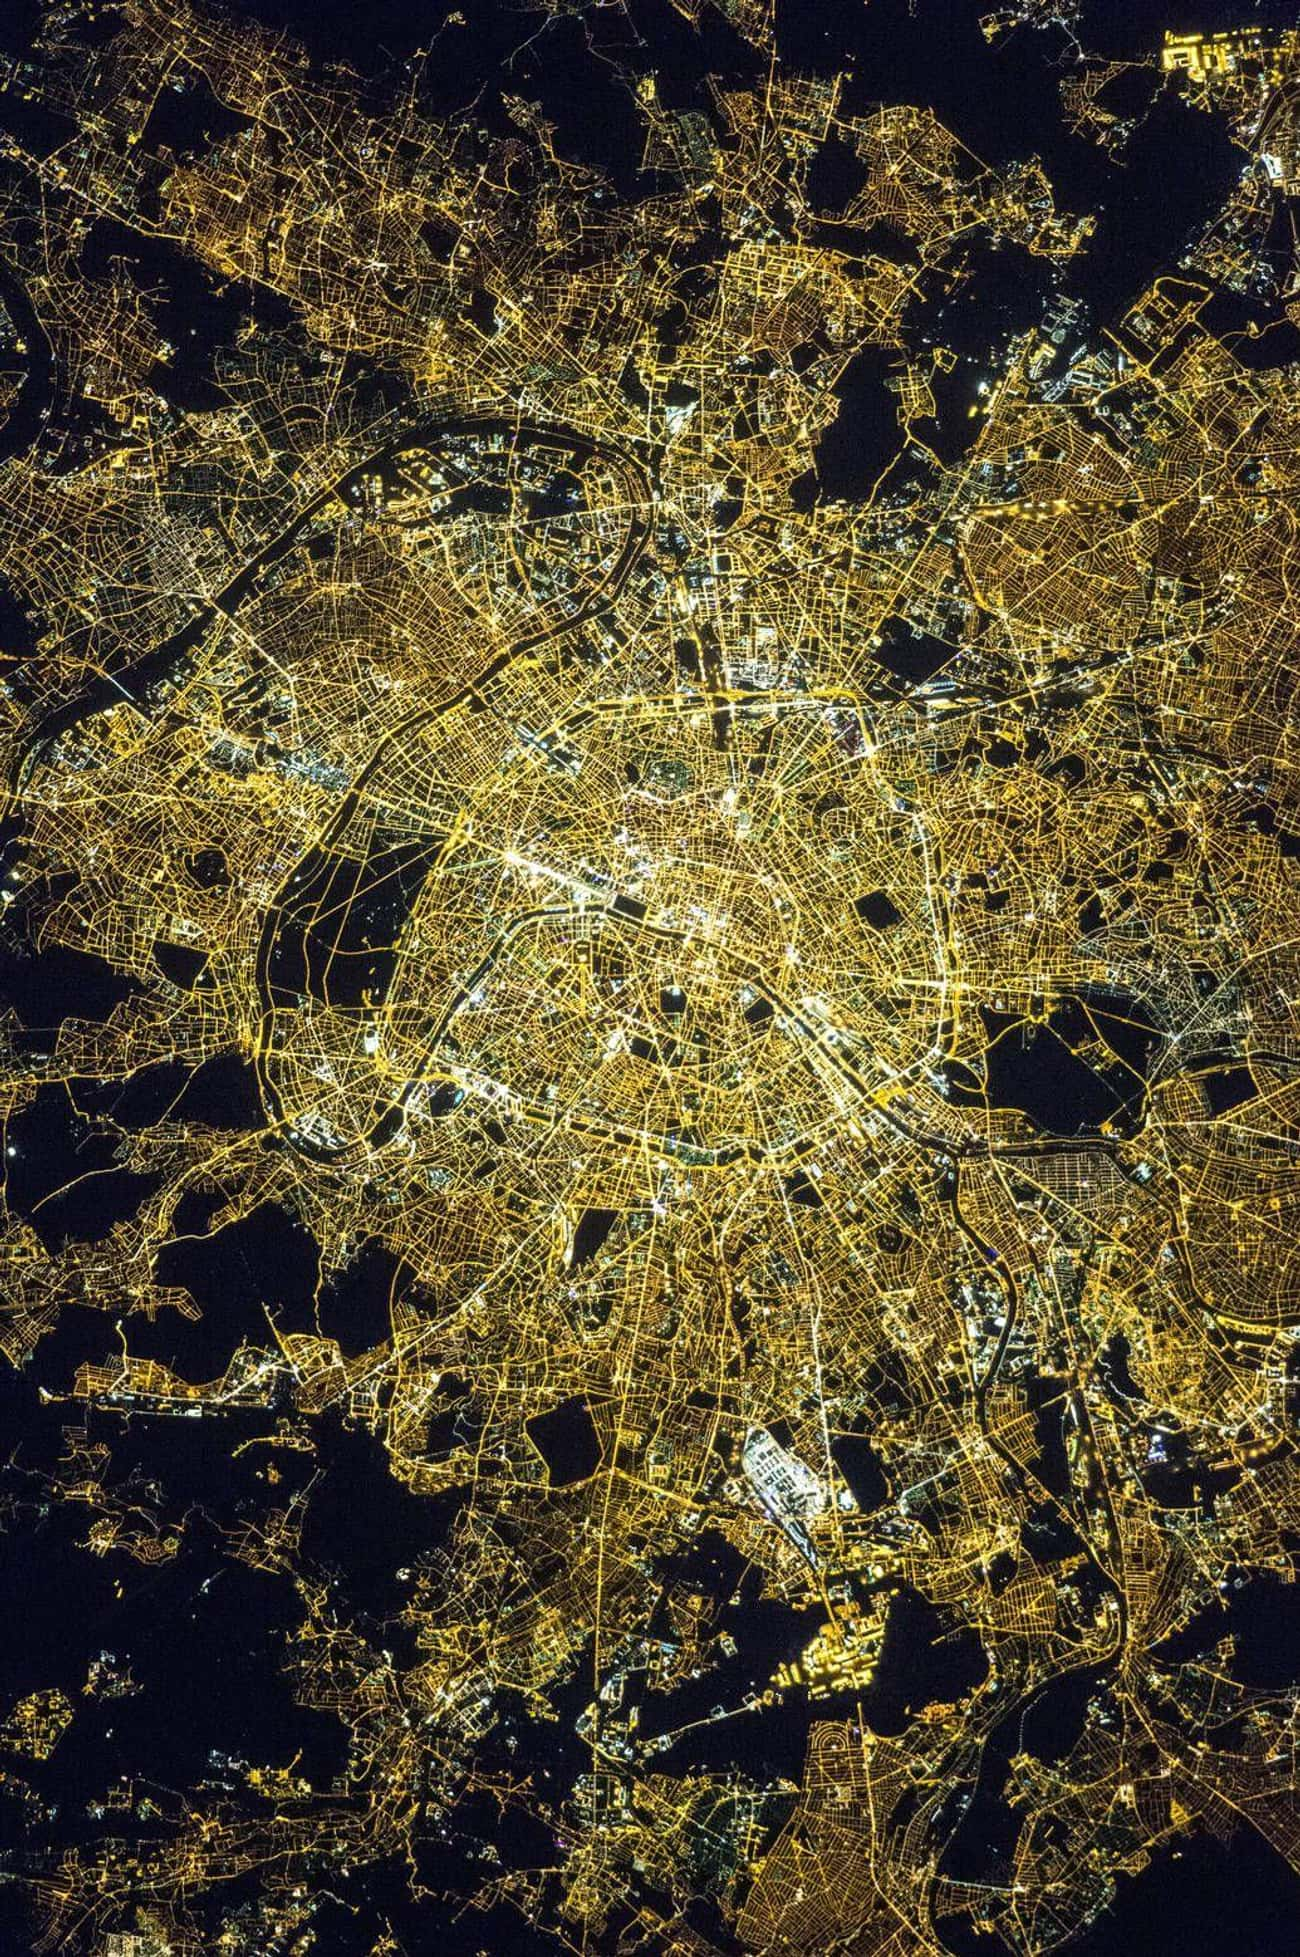 Paris, Living Up to Its Nickna is listed (or ranked) 1 on the list Cool Aerial Photos of Cities at Night